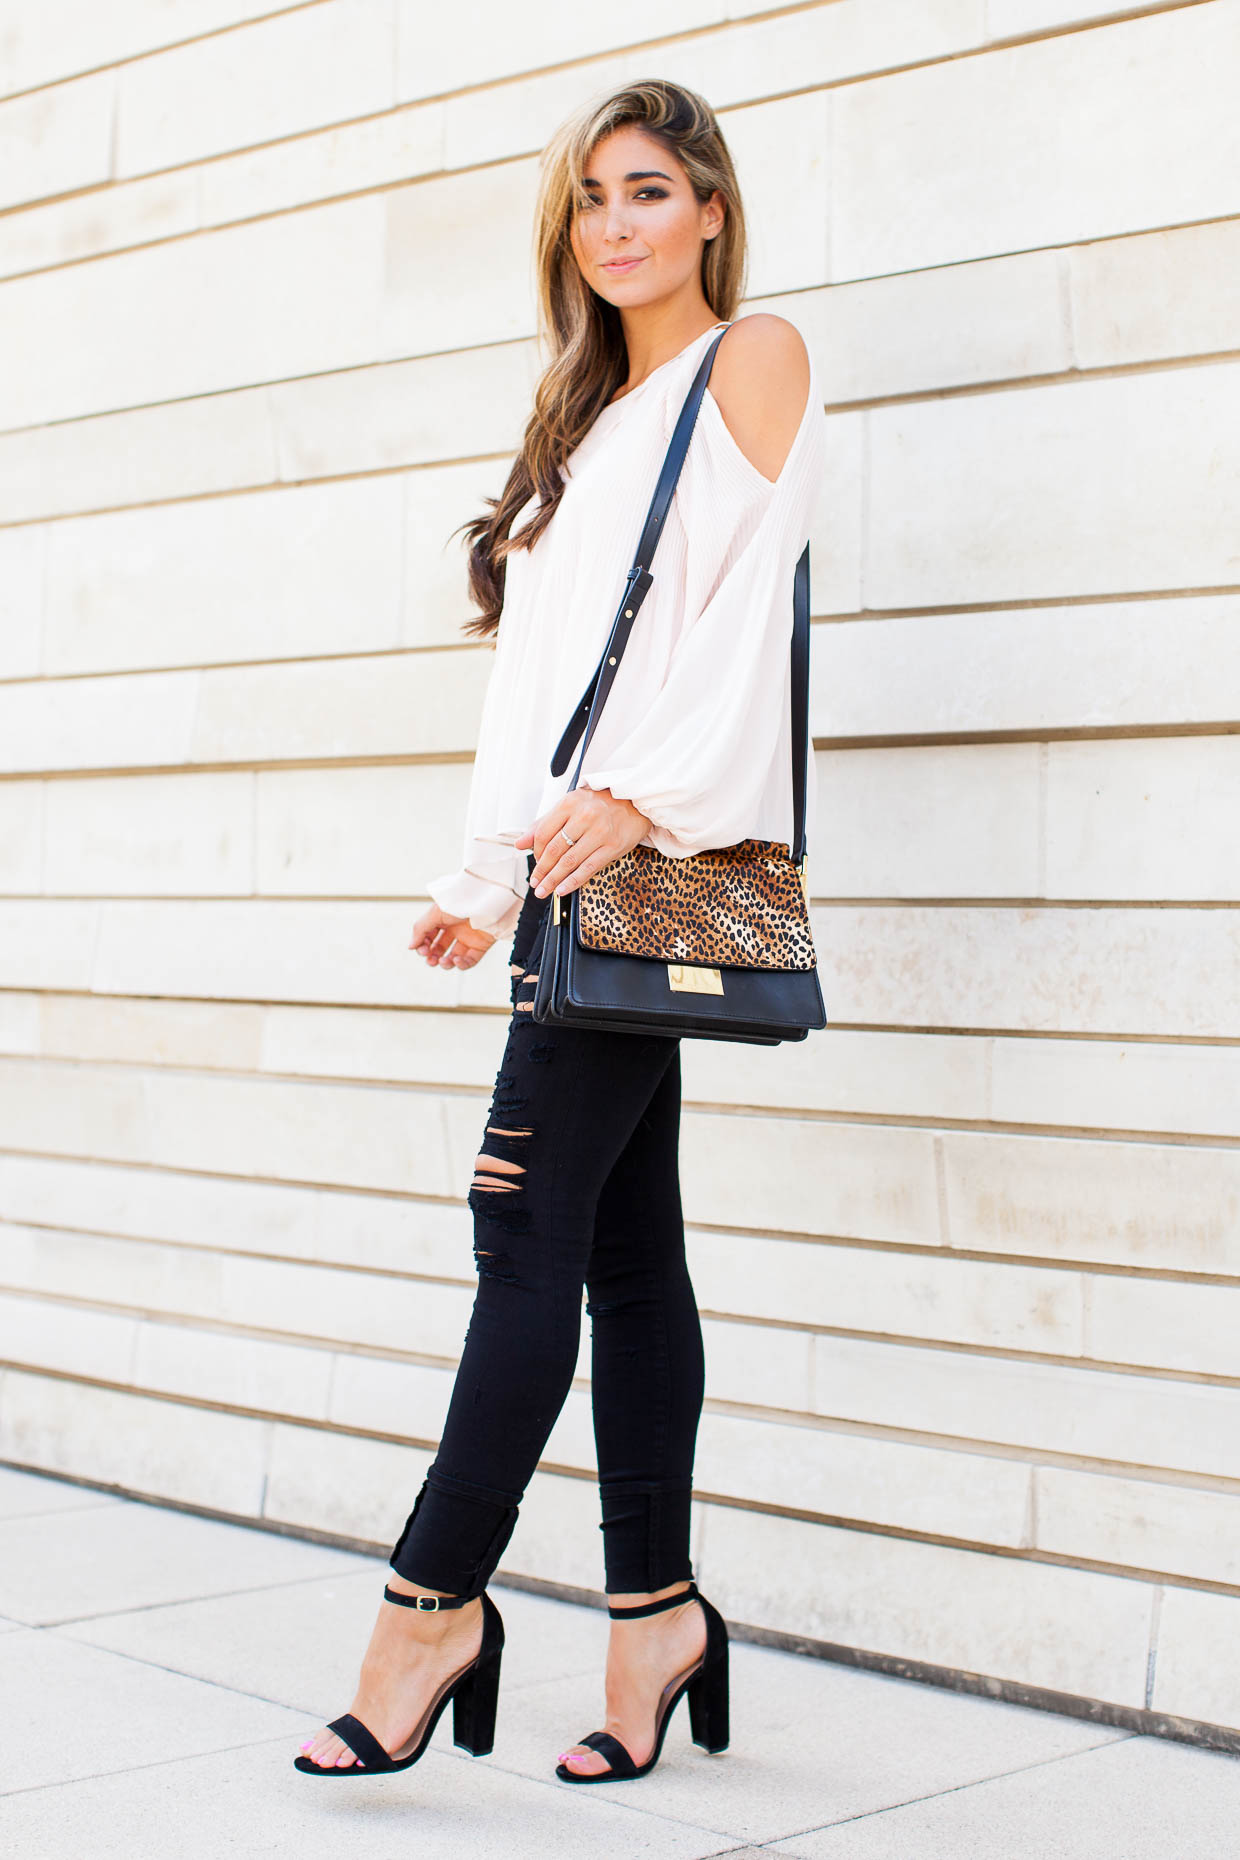 Fashion Blogger The Darling Detail is wearing an ASTR Pleated Cold Shoulder Top, A Gold E 'Sophie' High Rise Skinny Jeans, Steve Madden 'Carrson' Sandals, the Larsson & Jennings 'Lugano' Mesh Strap Watch, and a Vince Camuto 'Abril' Leather Shoulder Bag.